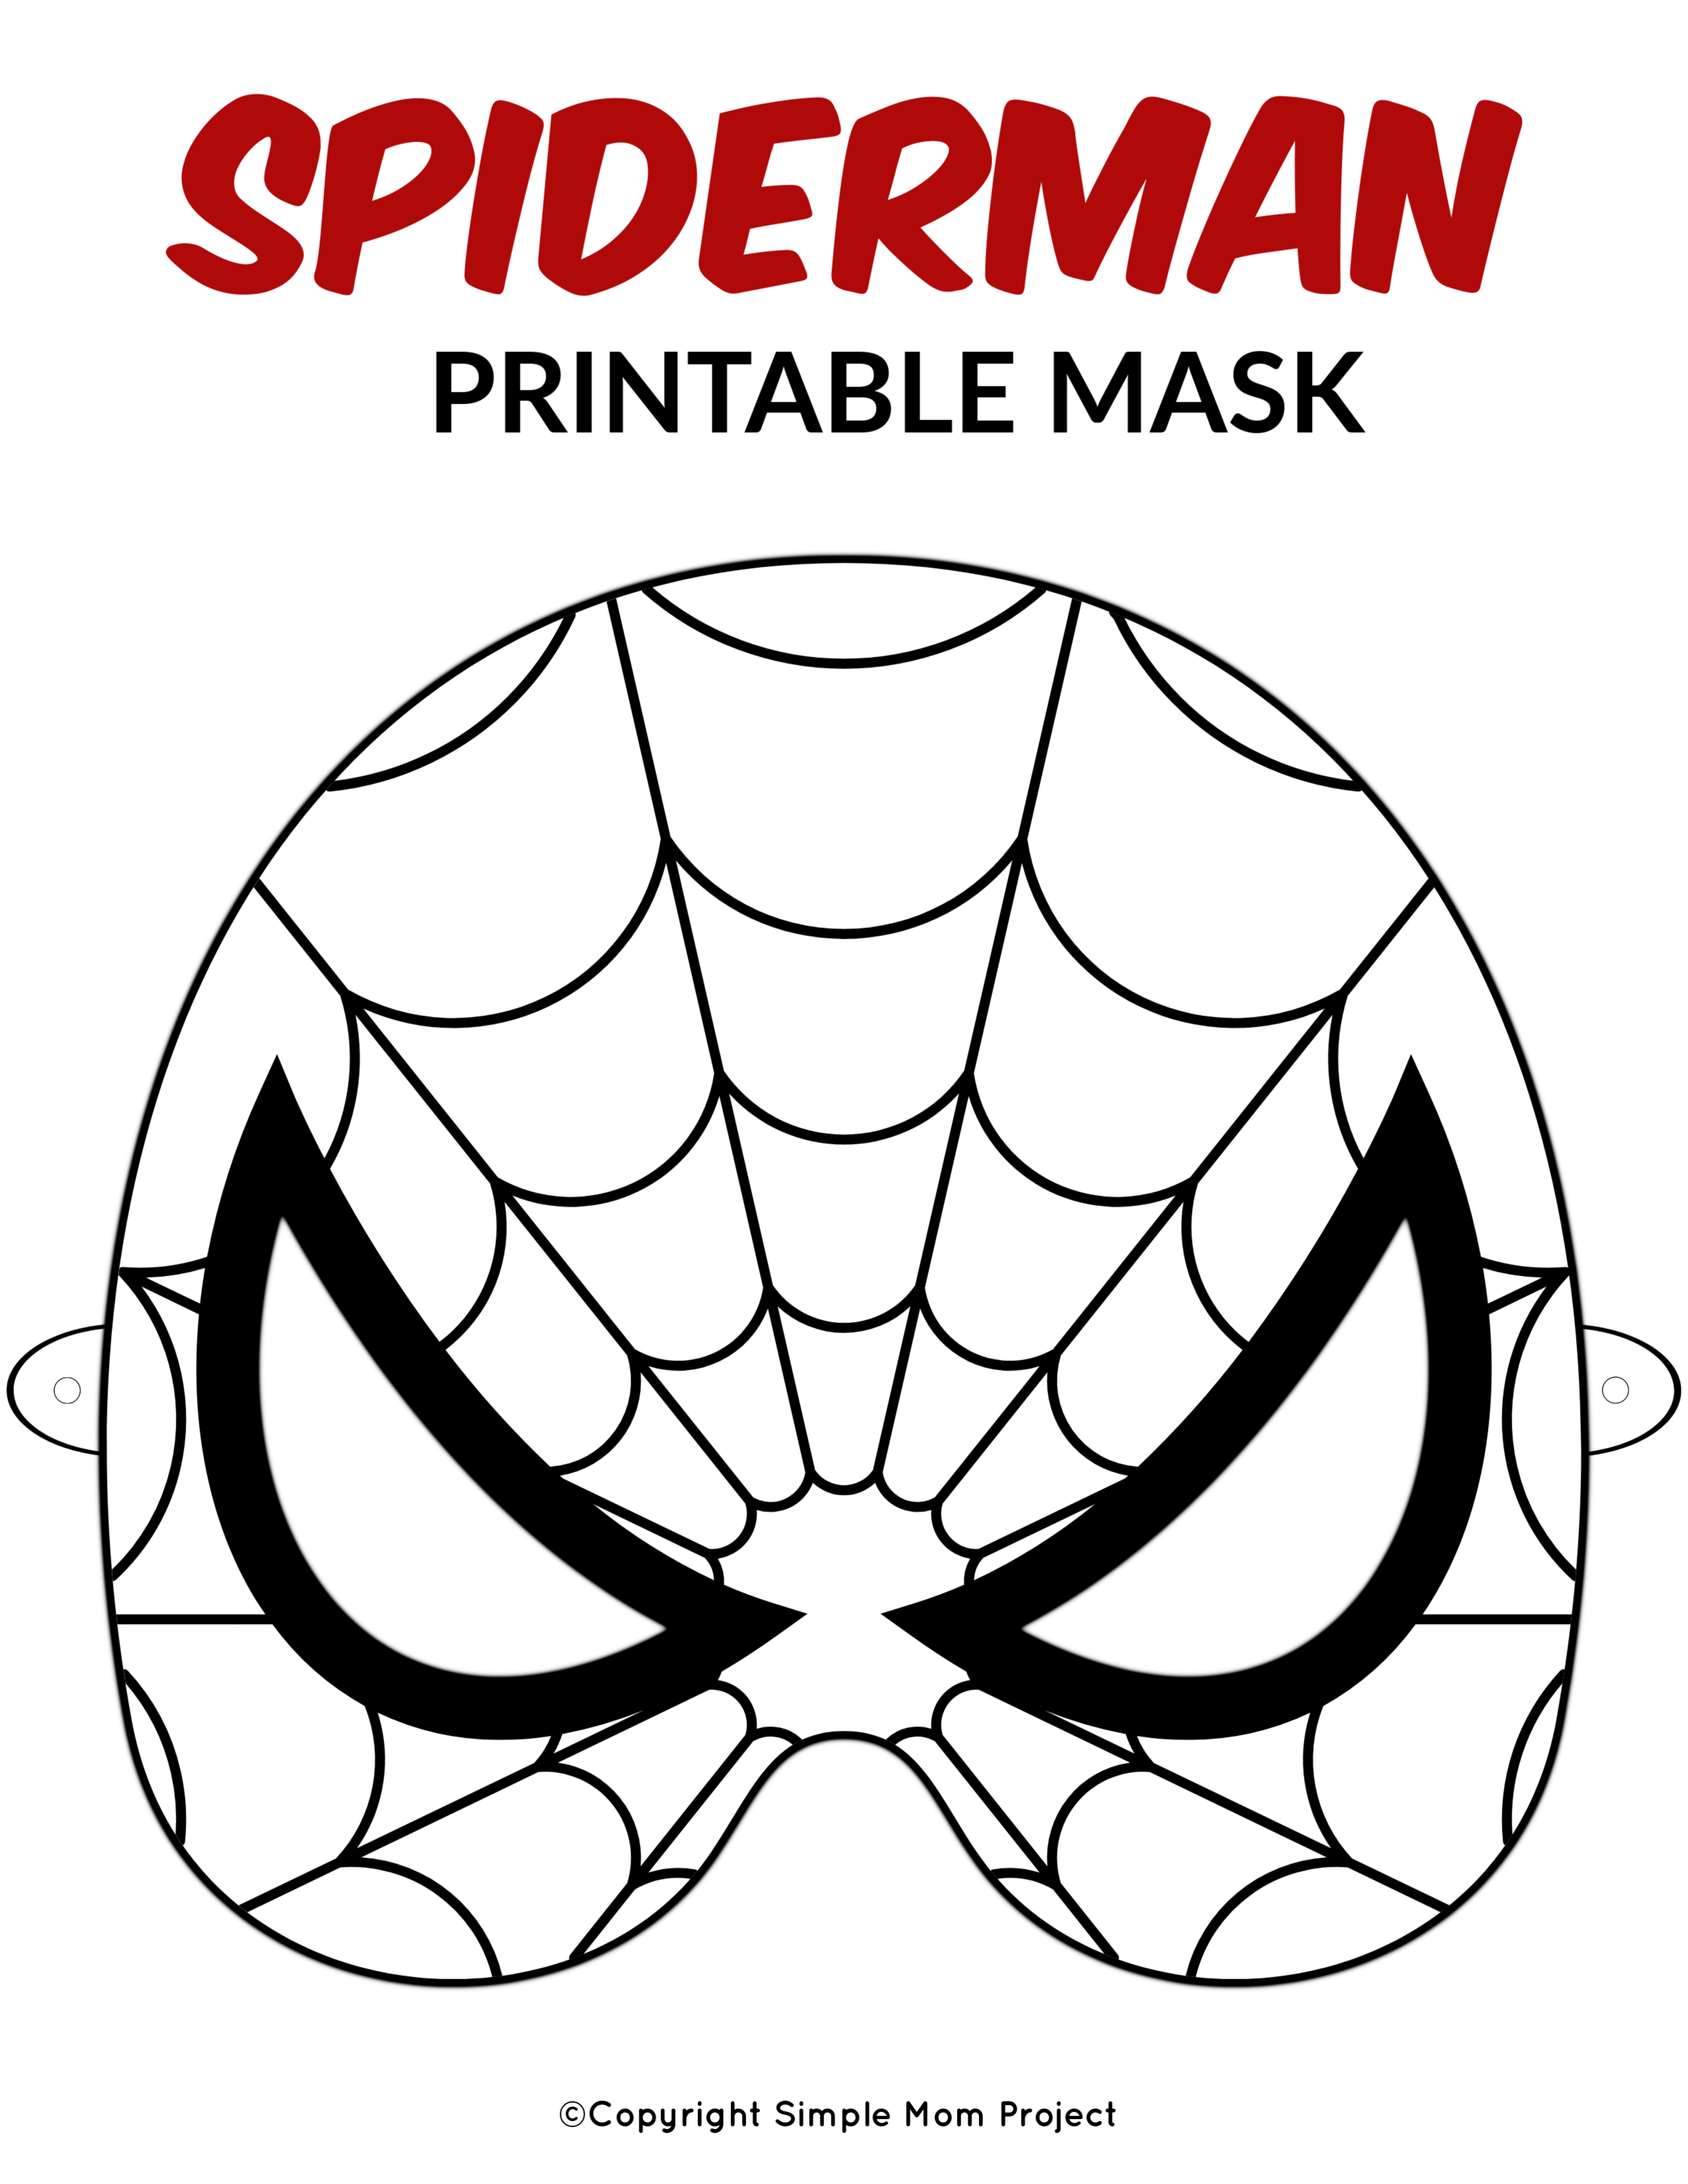 Free Printable Superhero Face Masks For Kids